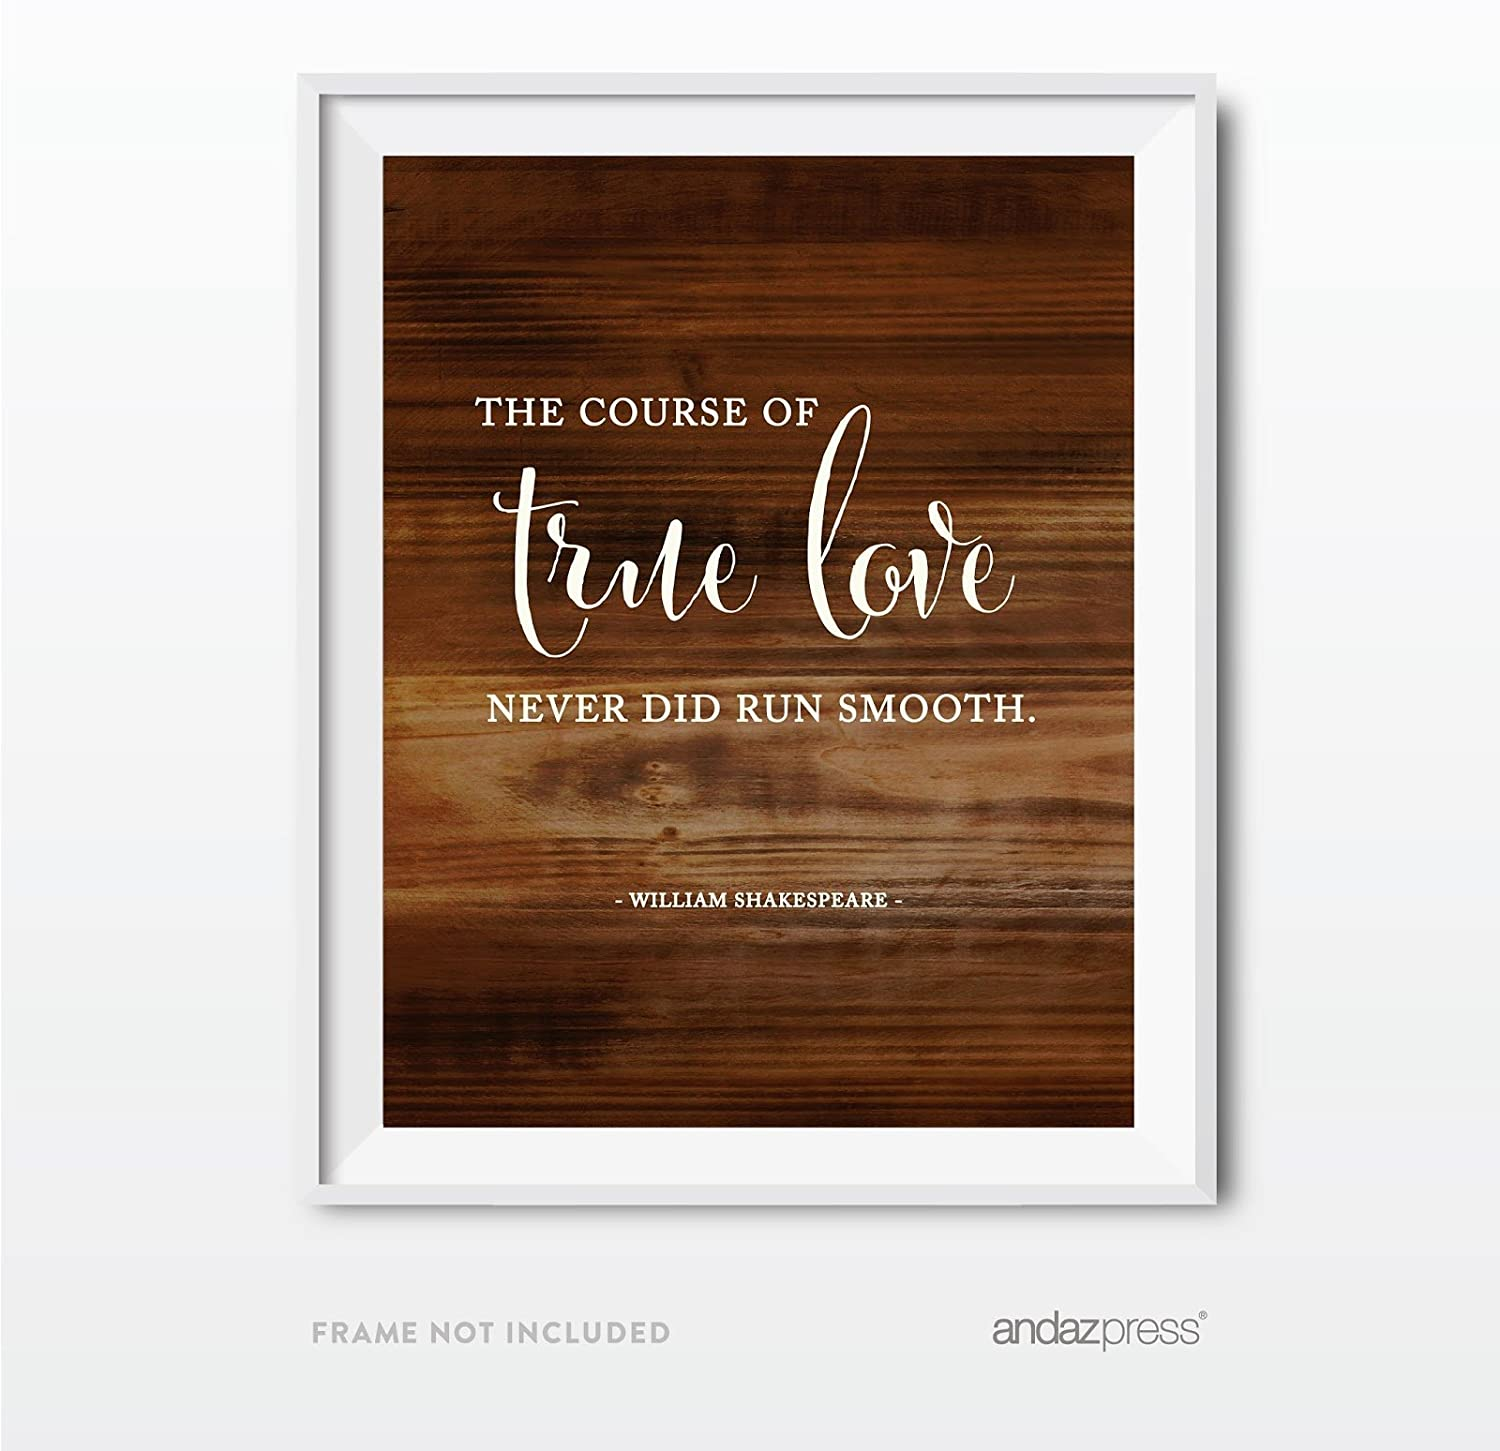 Andaz Press Wedding Love Quote Wall Art, Rustic Wood Print, 8.5x11-inch Poster, Gift, Sign, The Course of True Love Never did Run Smooth. Shakespeare, A Midsummer Night's Dream Quote, 1-Pack